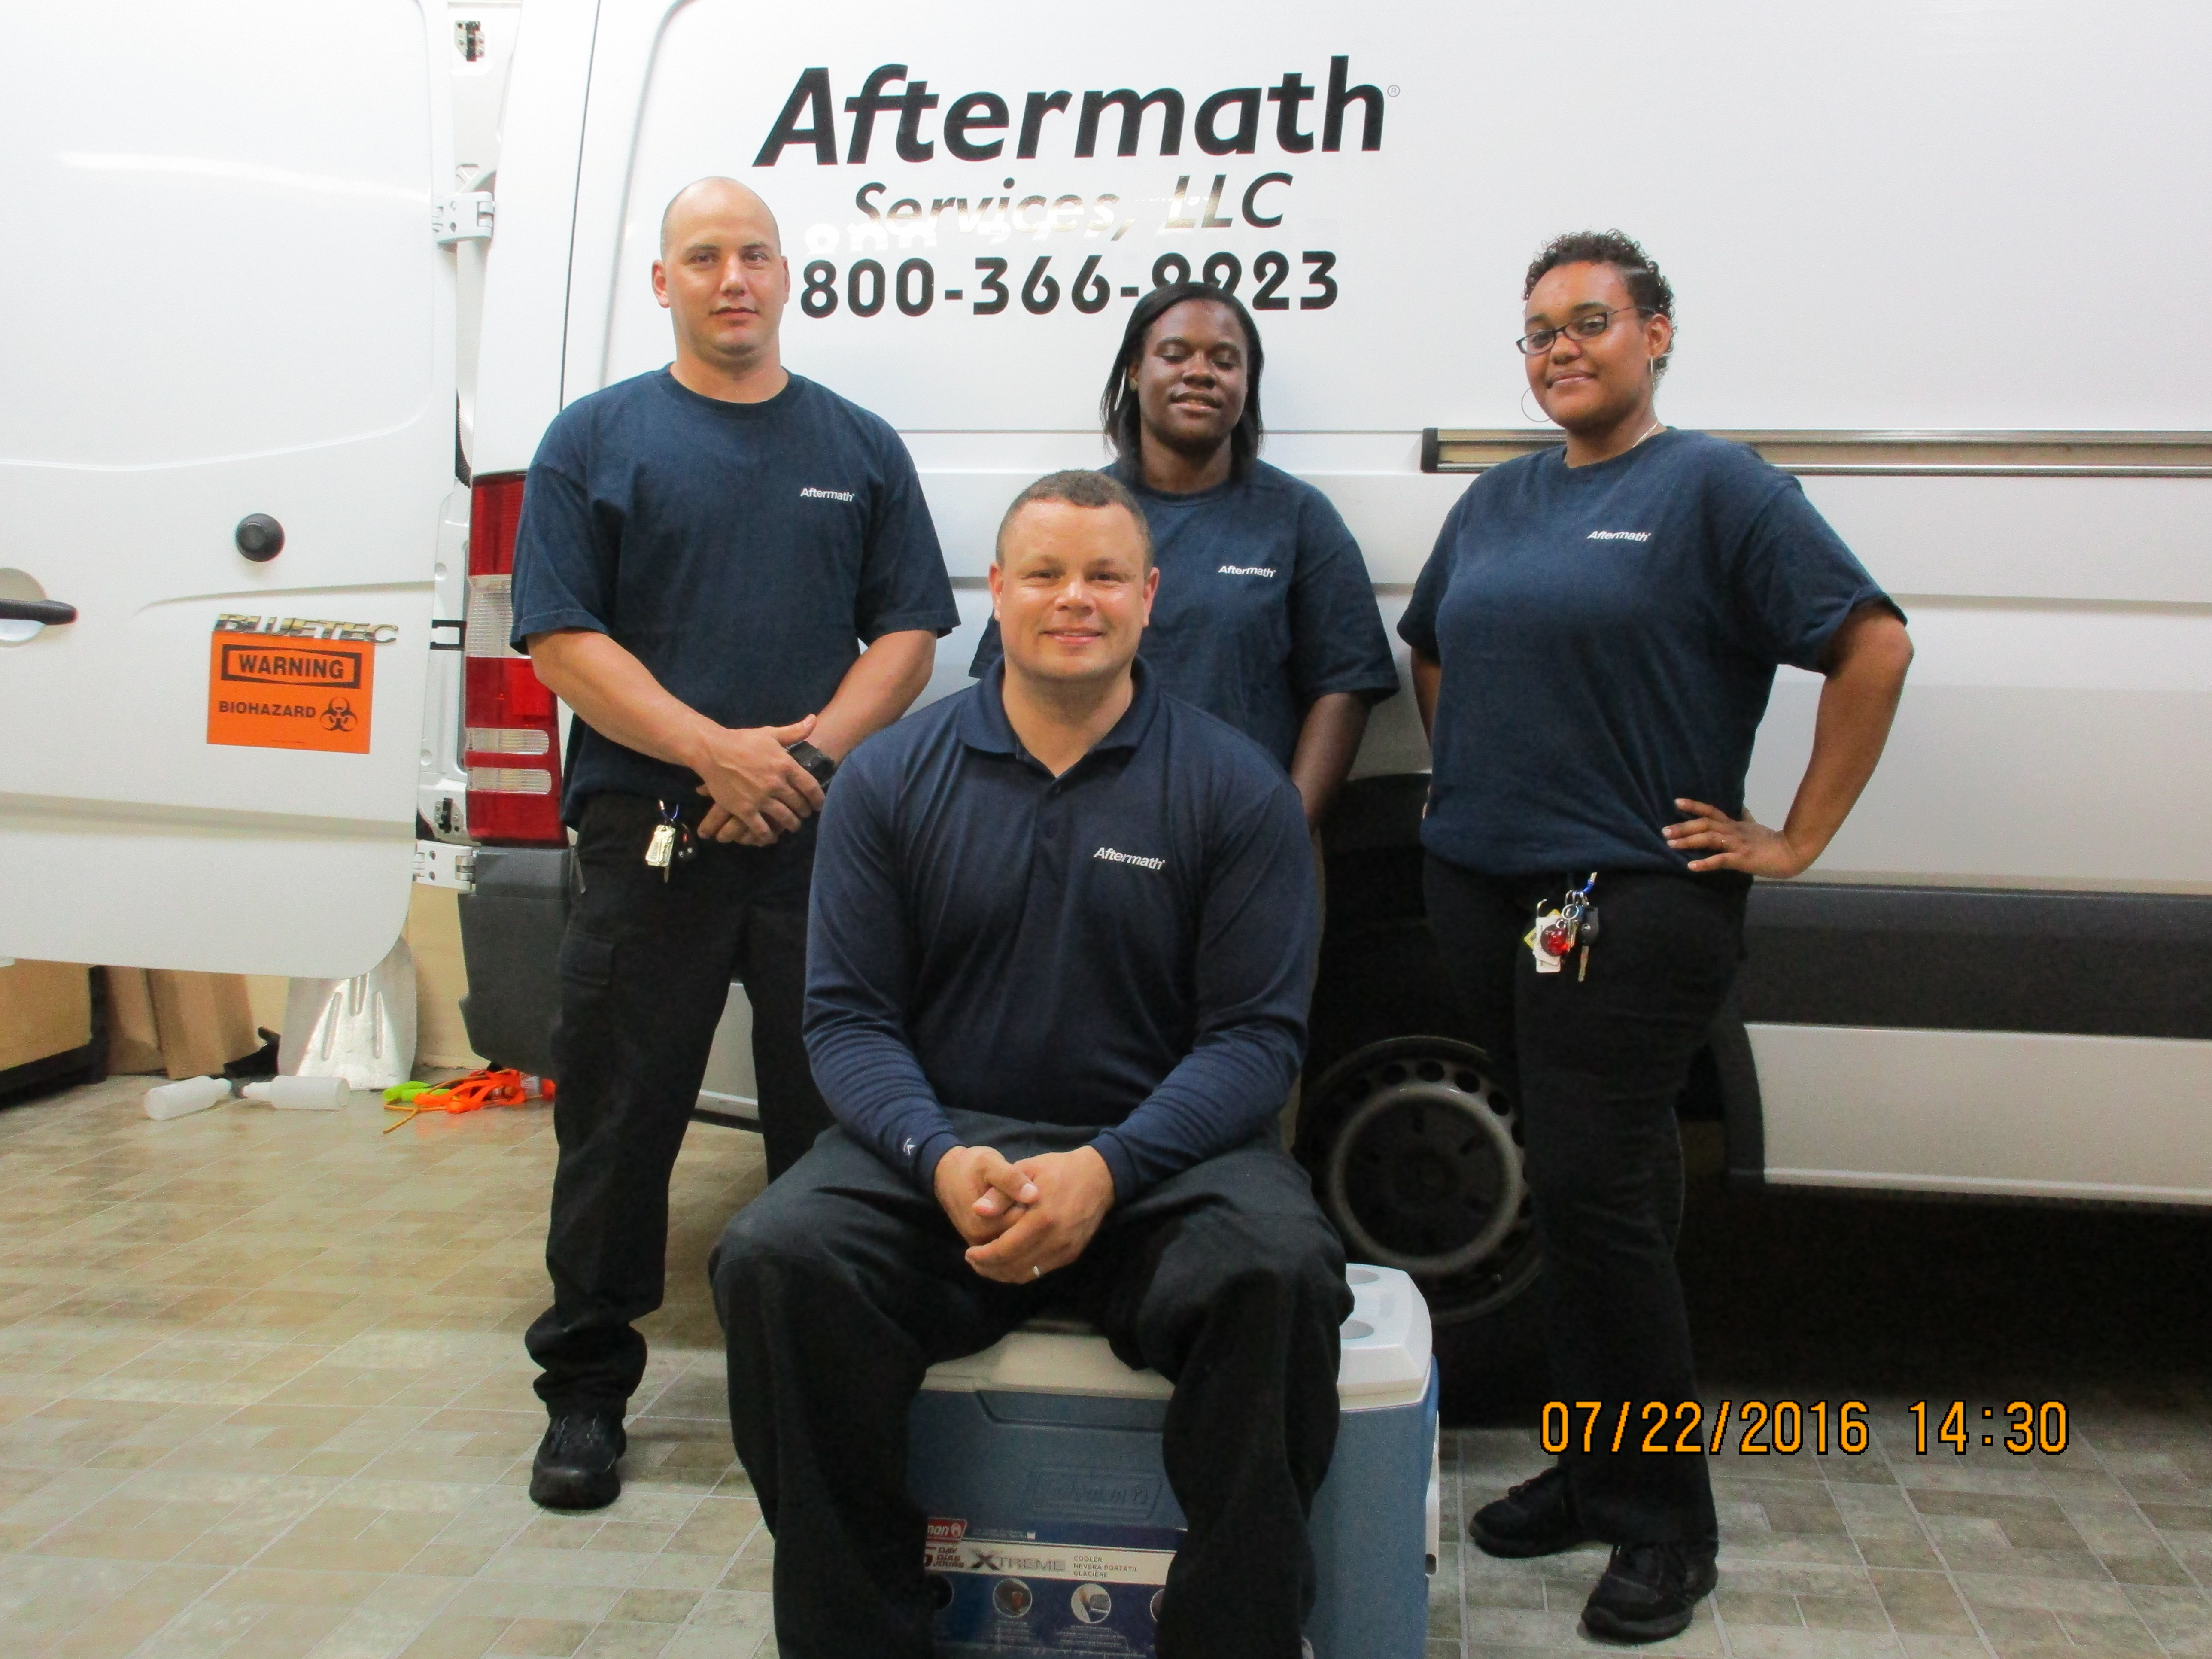 Crime Scene Cleanup Miami: Meet Our Newest Team